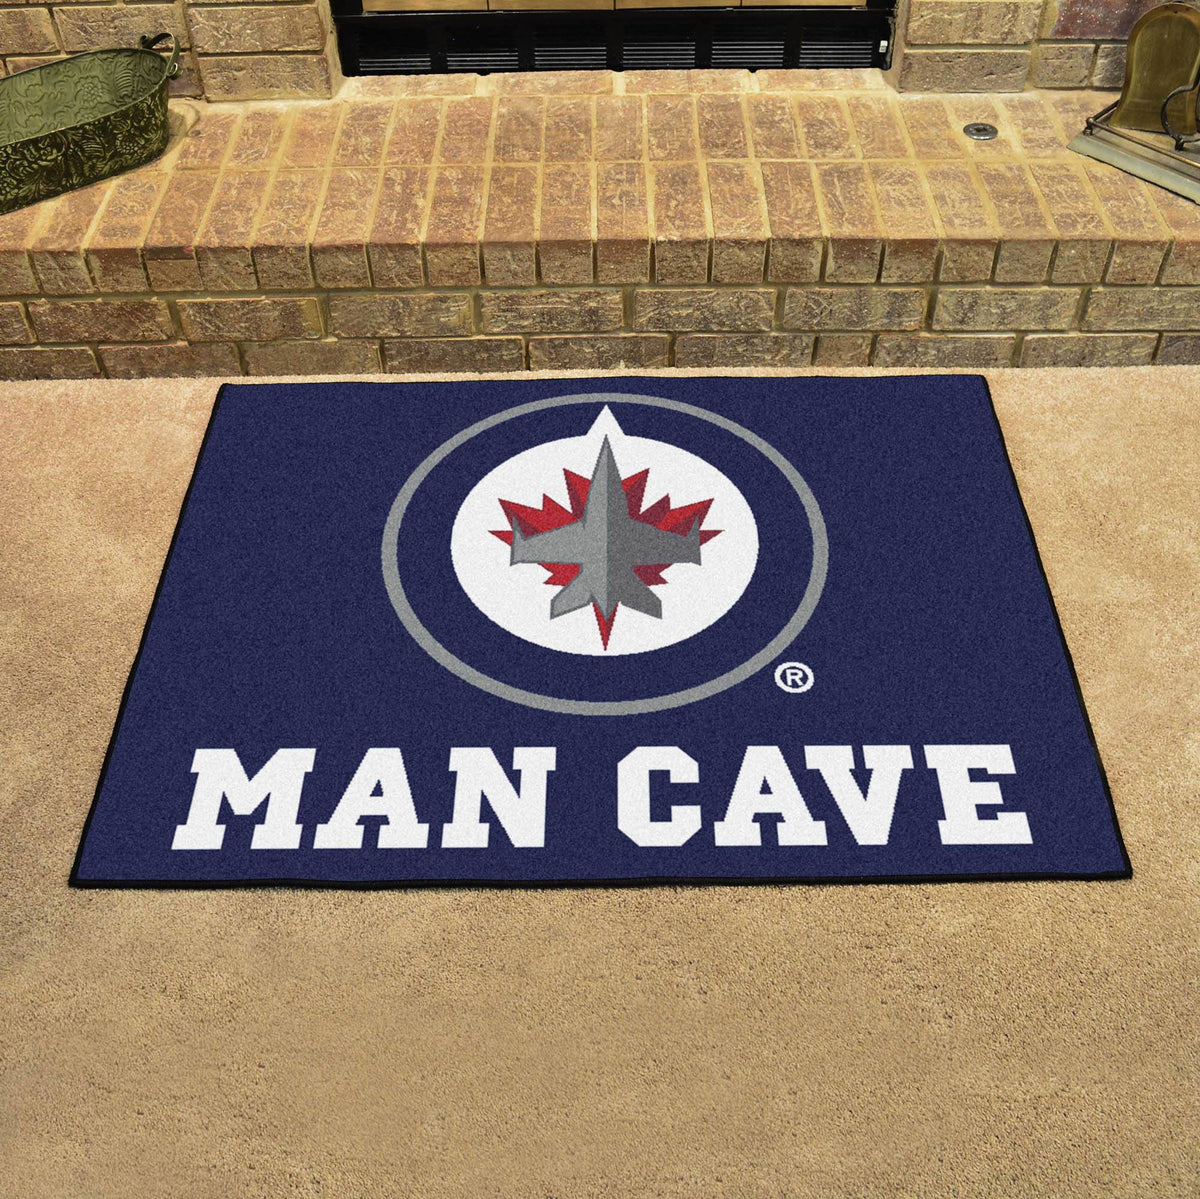 NHL - Man Cave All-Star NHL Mats, Rectangular Mats, Man Cave All-Star Mat, NHL, Home Fan Mats Winnipeg Jets